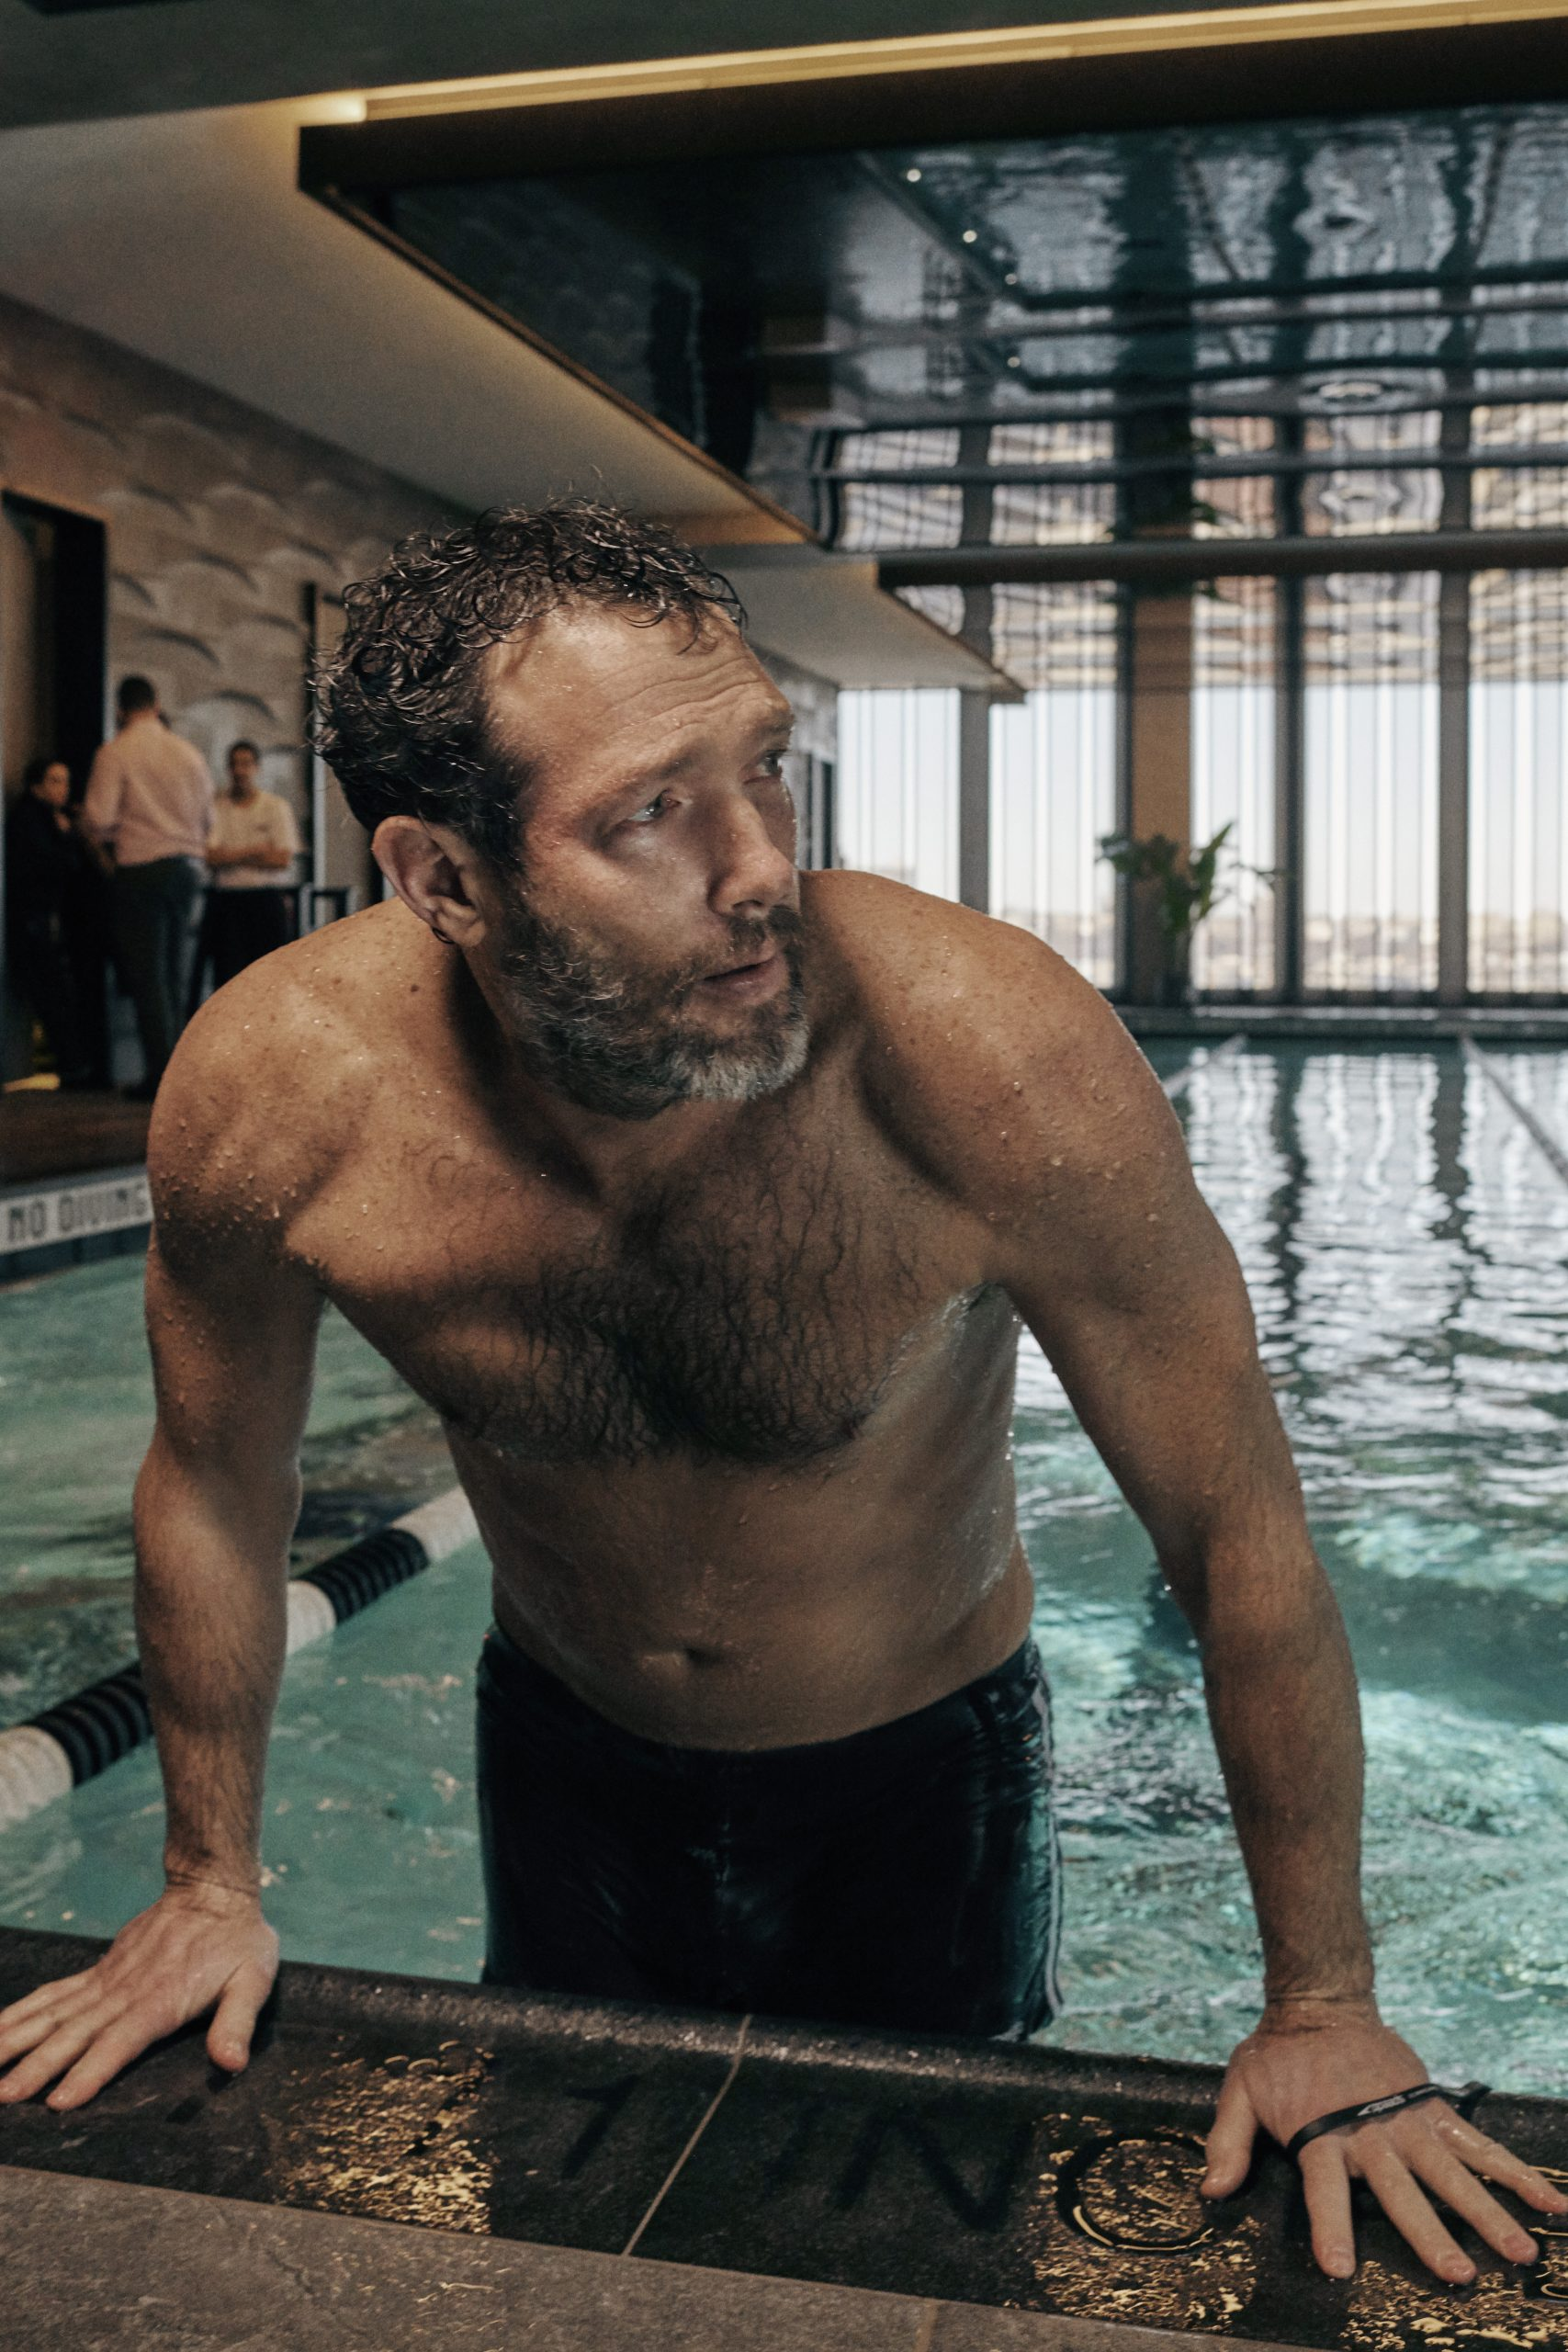 <man getting out of indoor pool at fitness club